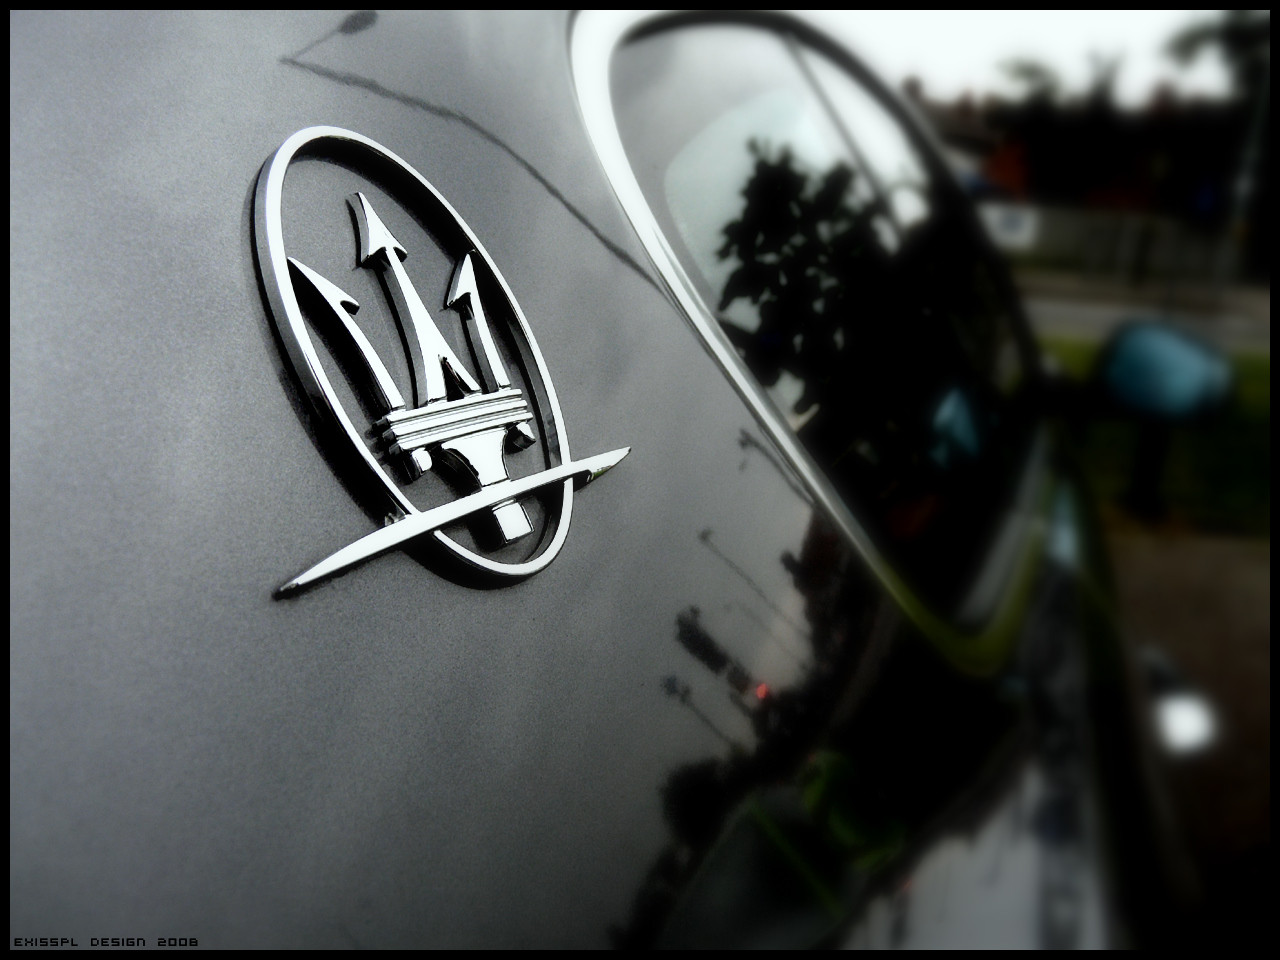 maserati logo wallpaper hd maserati logo wallpaper hd 1280x960